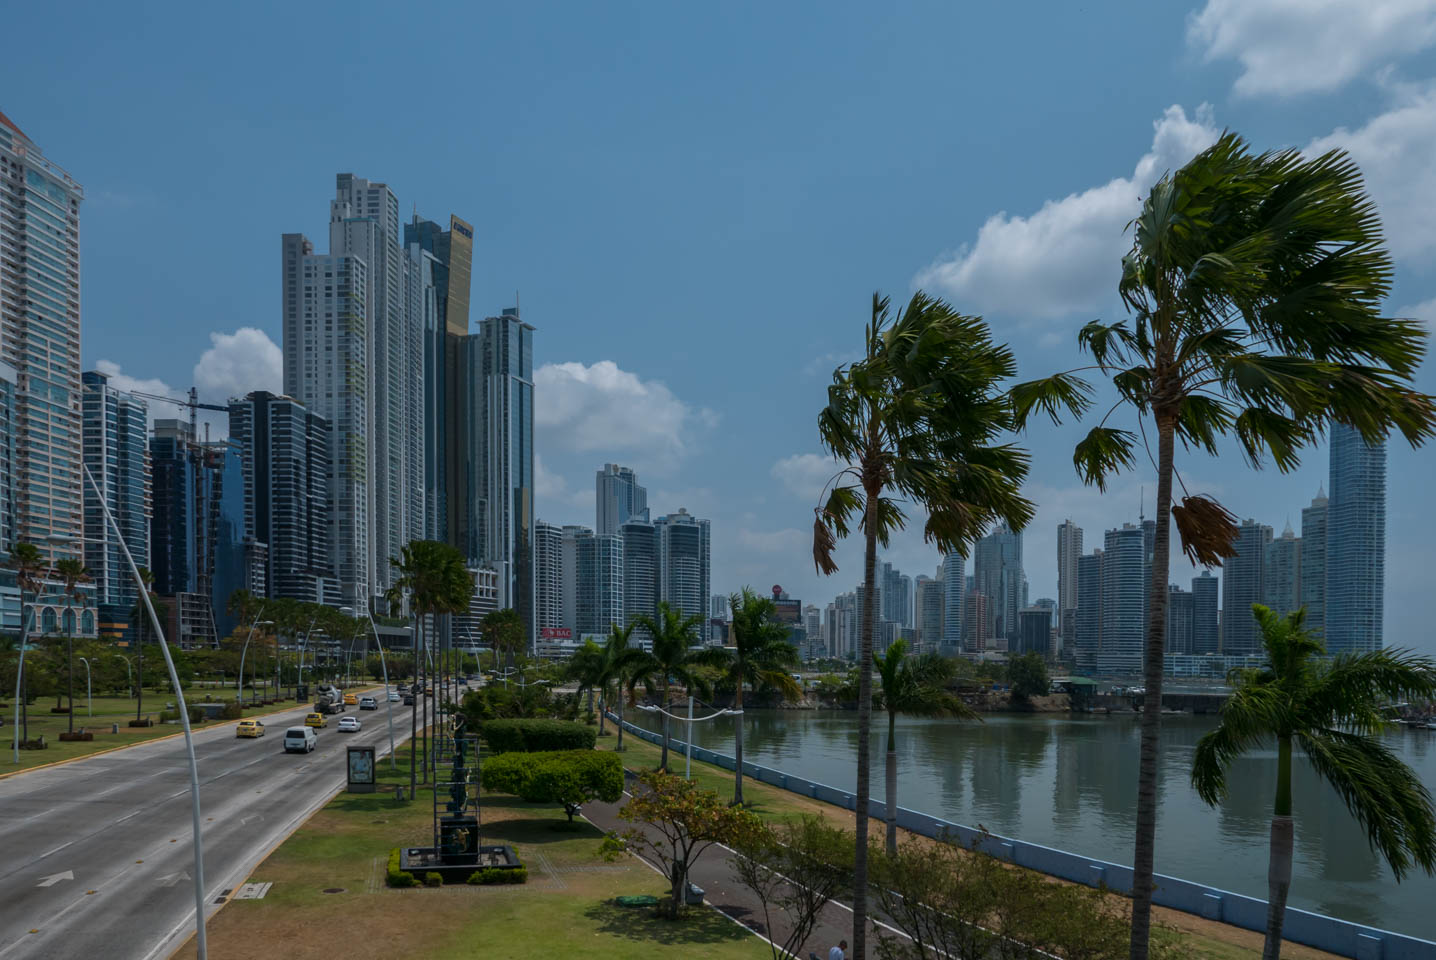 Panama City Financial District and Waterfront by YKUT Youkeepustraveling